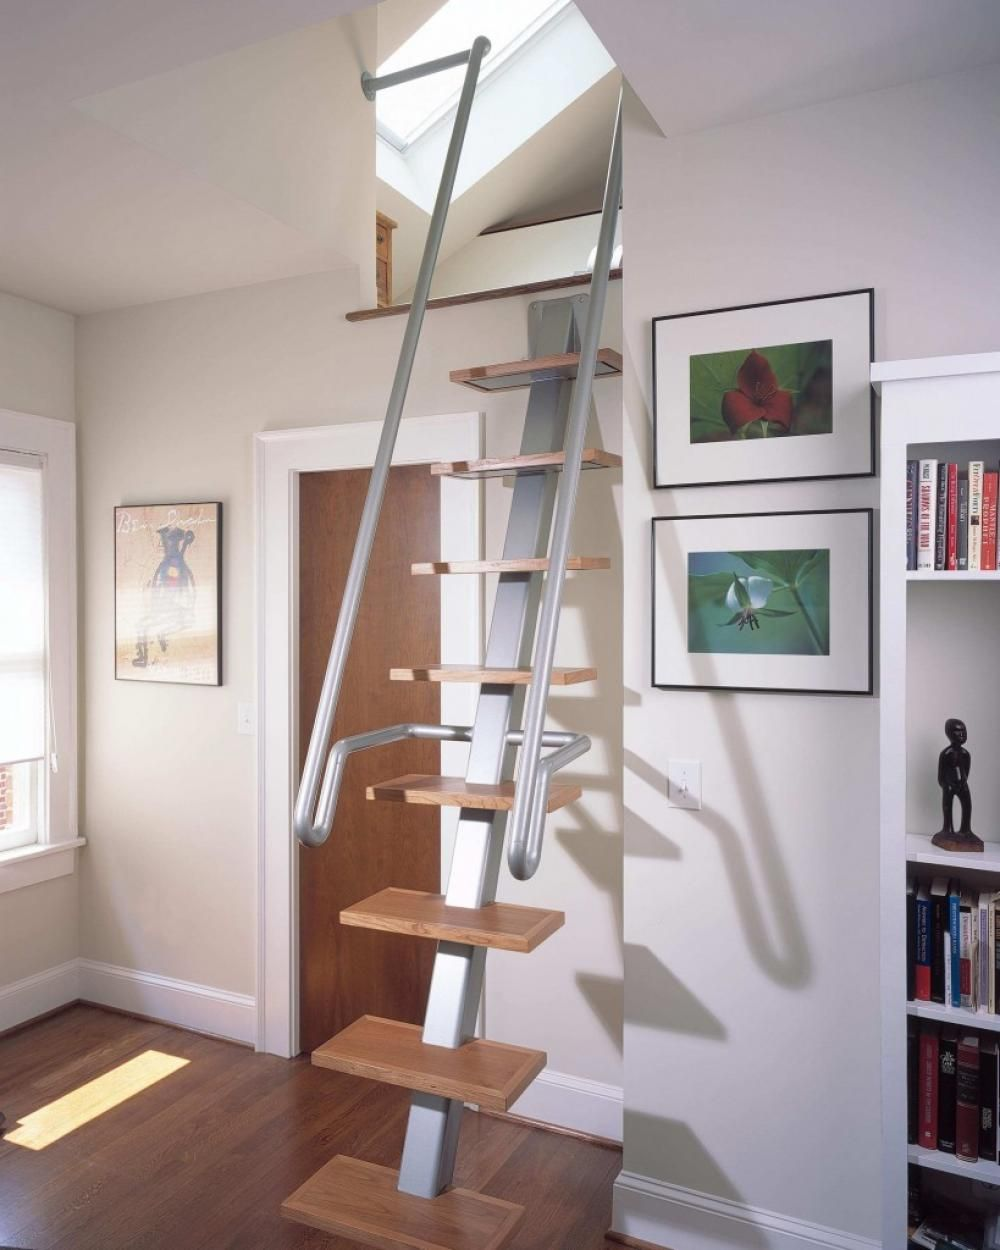 Unique And Creative Staircase Designs For Modern Homes Small | Unique Stairs For Small Spaces | Mini | Small Area | Ladder | Stairway | Loft